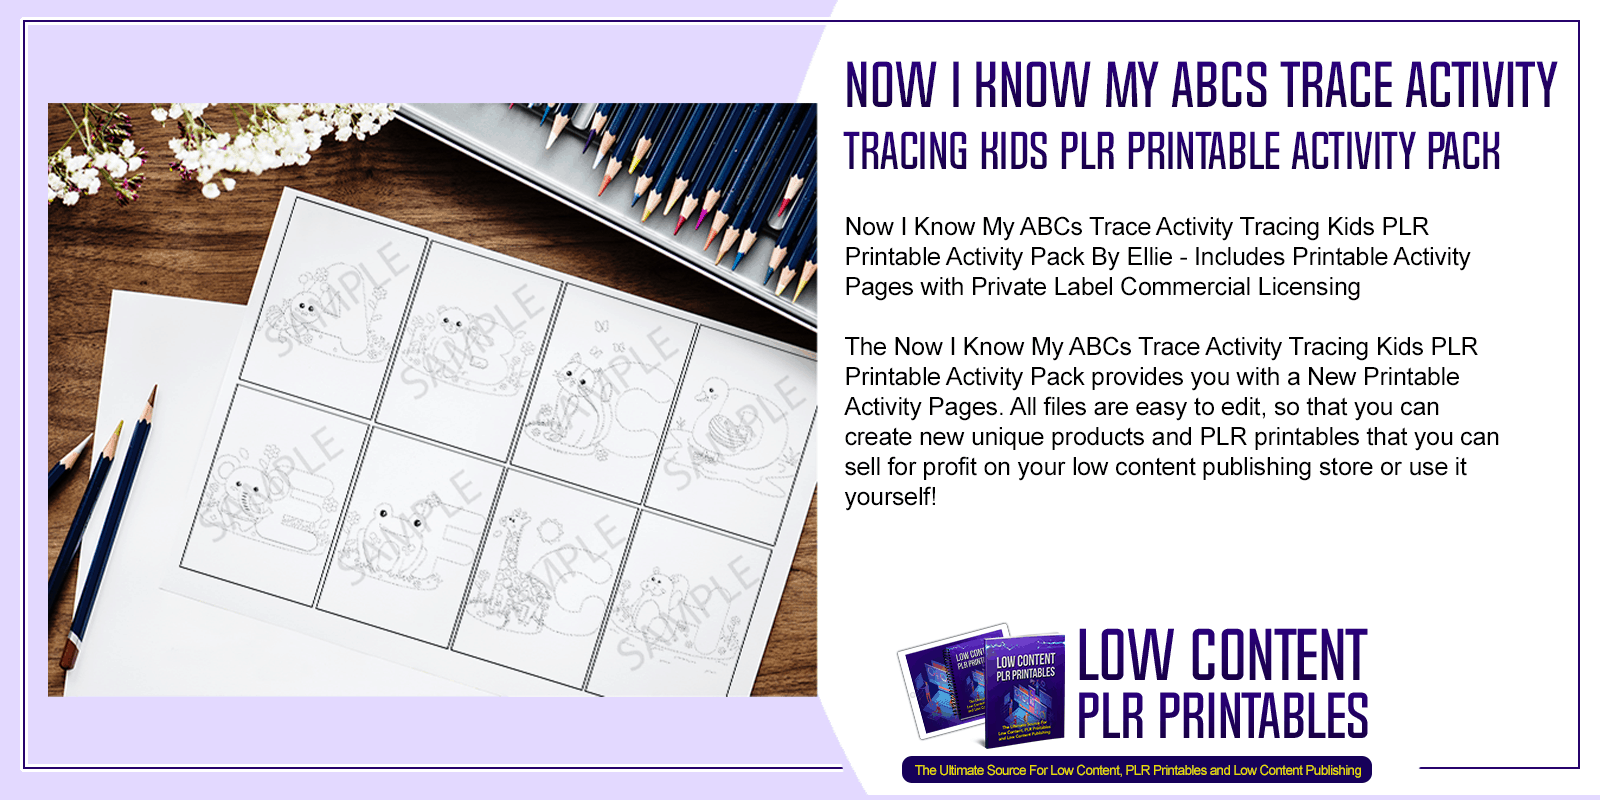 Now I Know My ABCs Trace Activity Tracing Kids PLR Printable Activity Pack